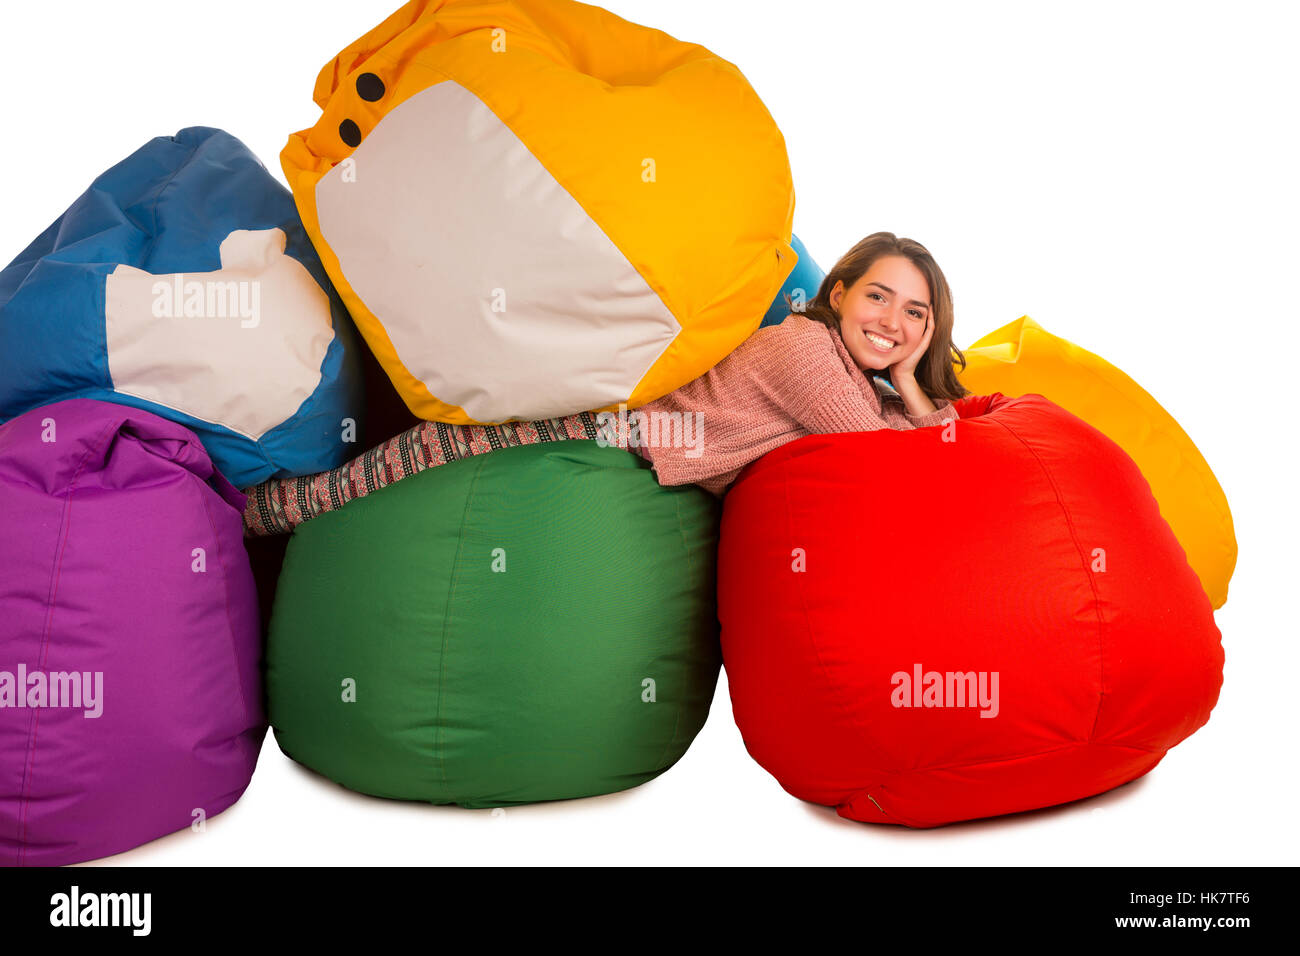 Young smiling woman lying between beanbag chairs isolated on white background - Stock Image